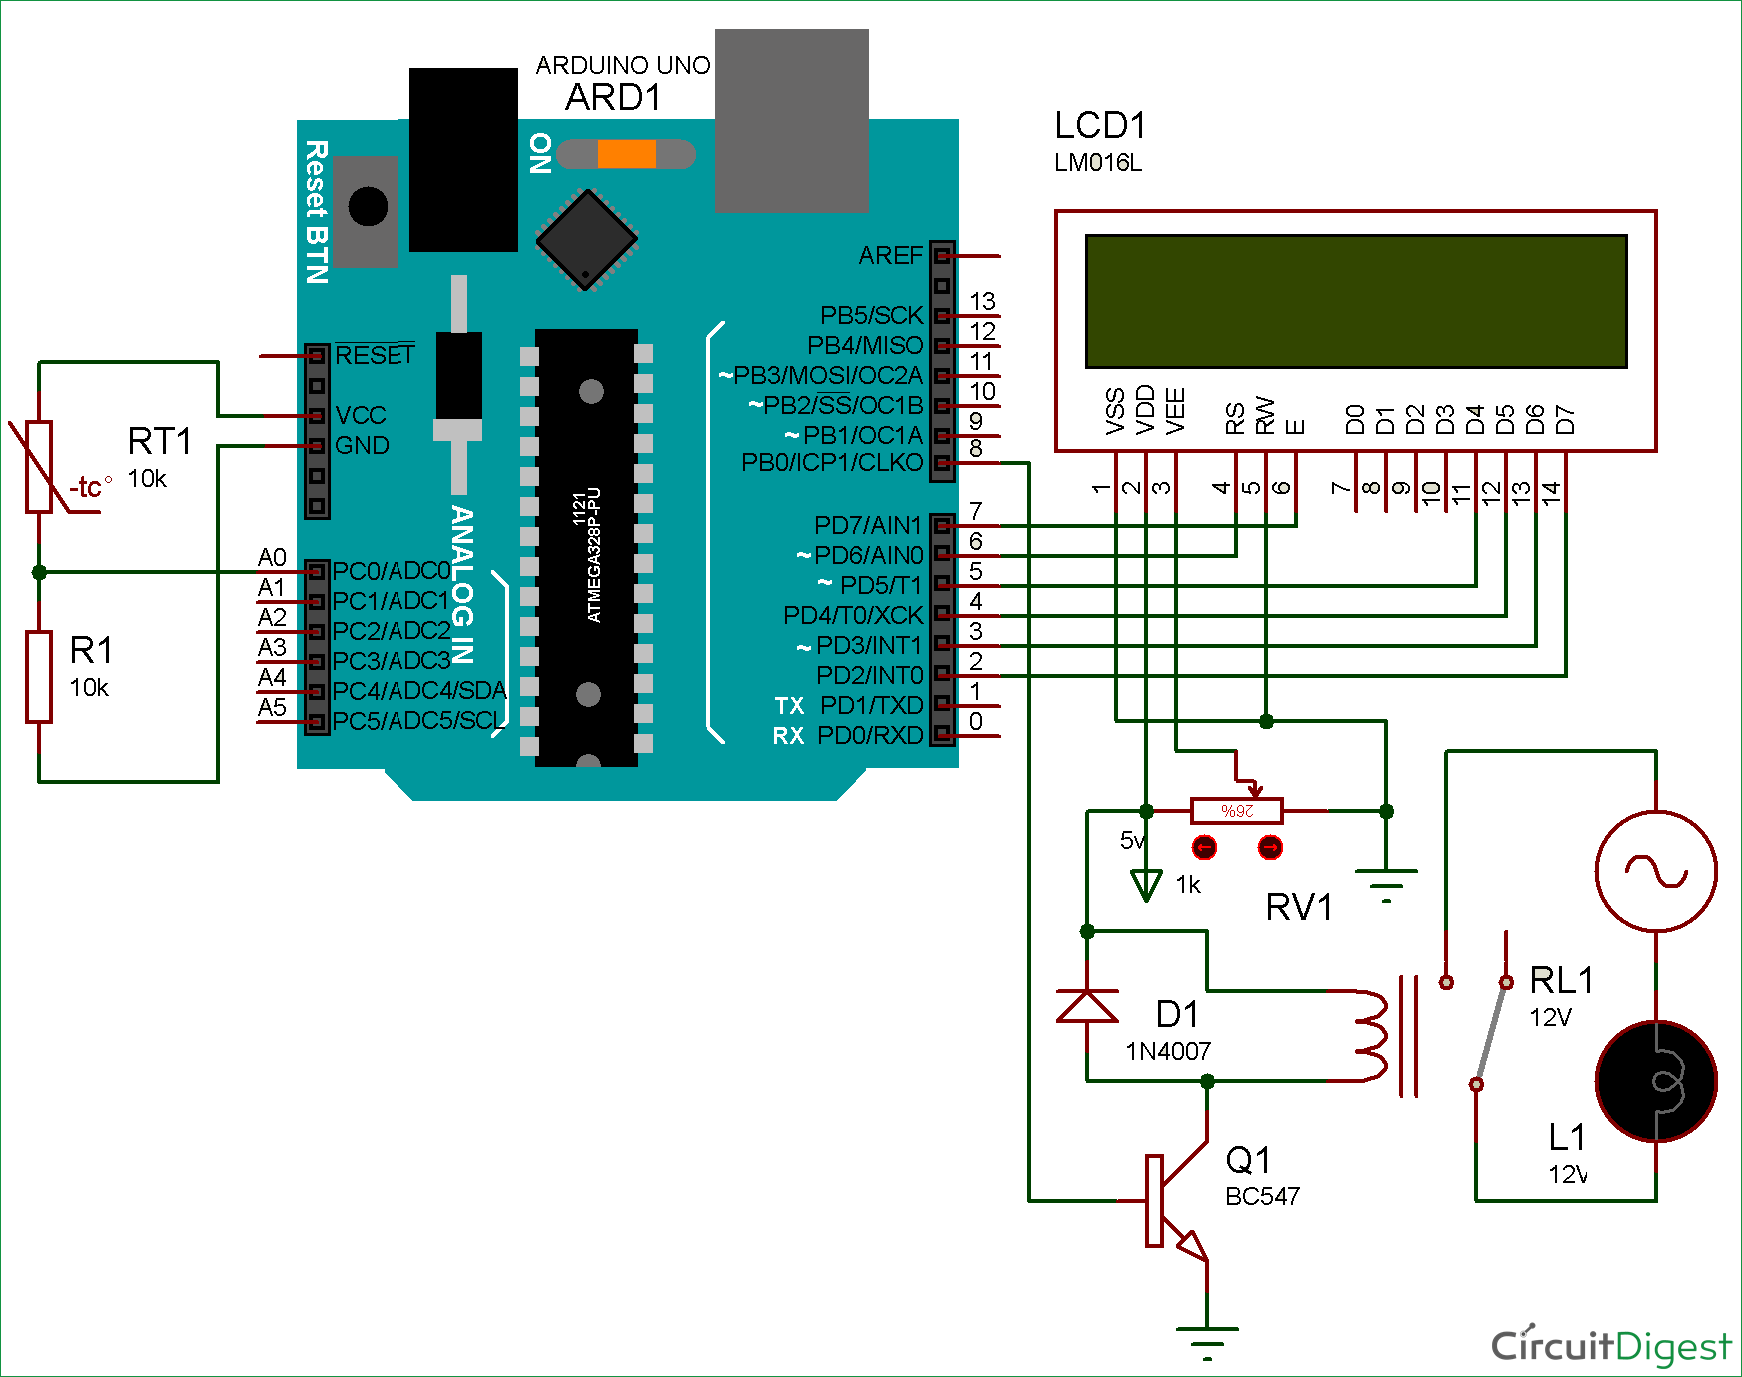 Circuit Diagram to Control Relay using Arduino based on Temperature ...